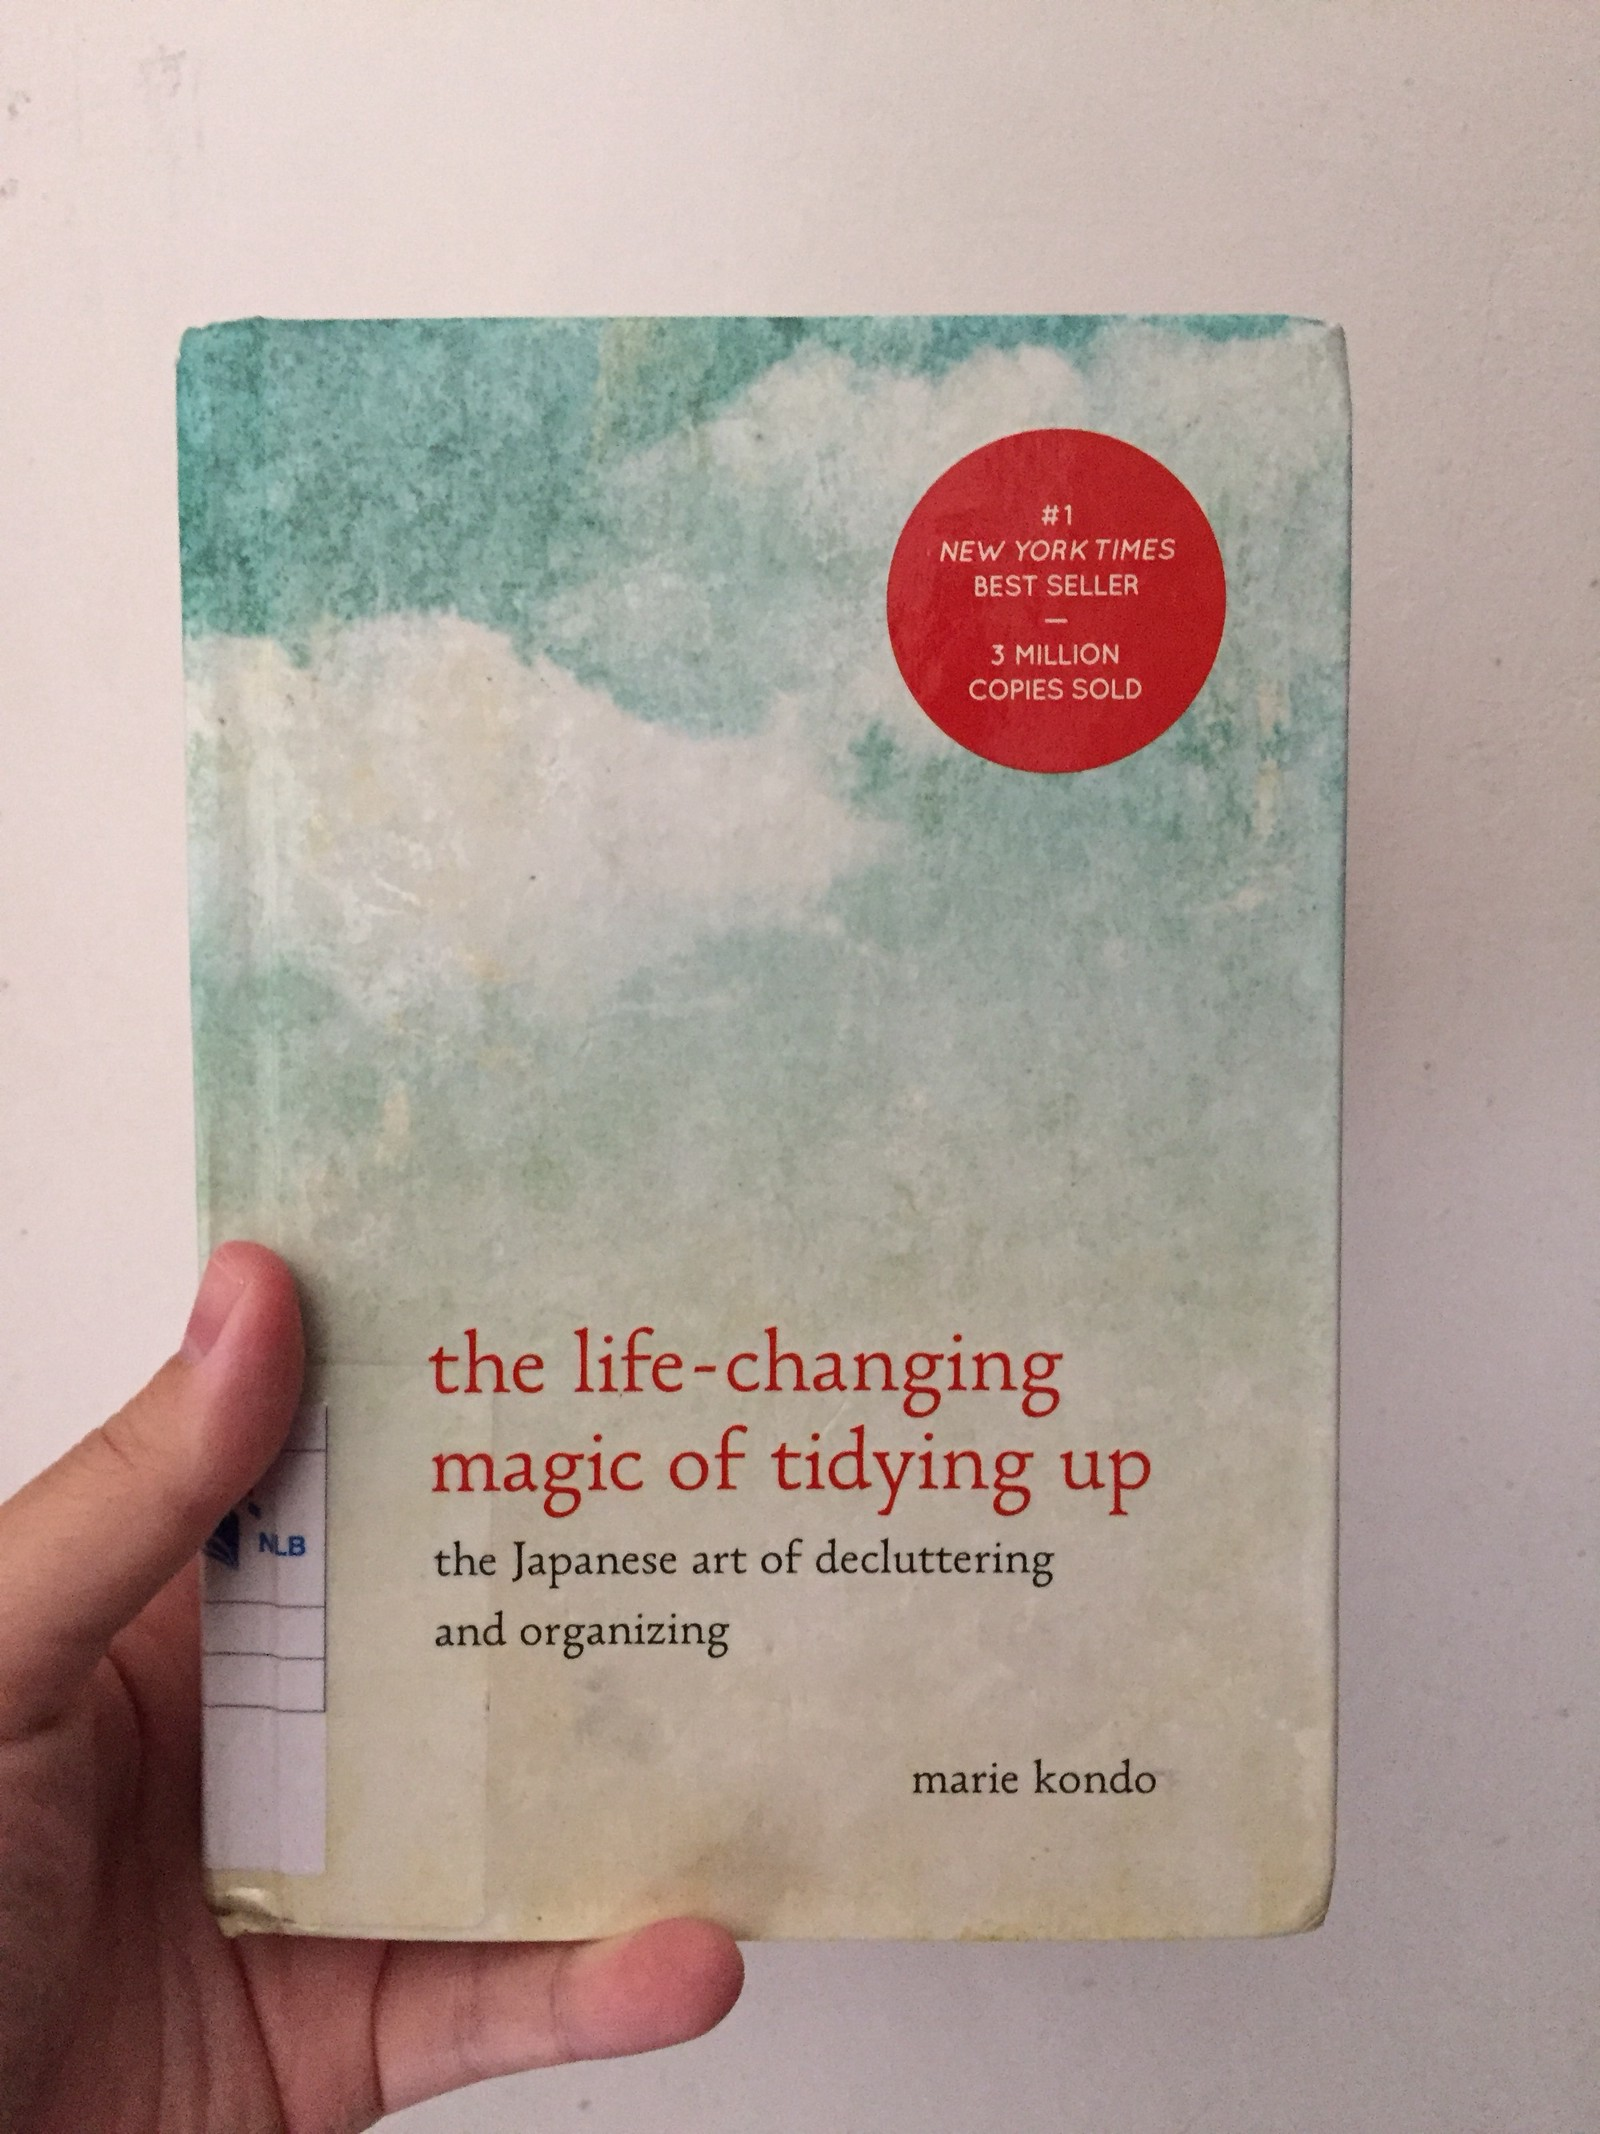 The Life Changing Magic Of Tidying Minimalist Book Review 7 The Life Changing Magic Of Tidying Up